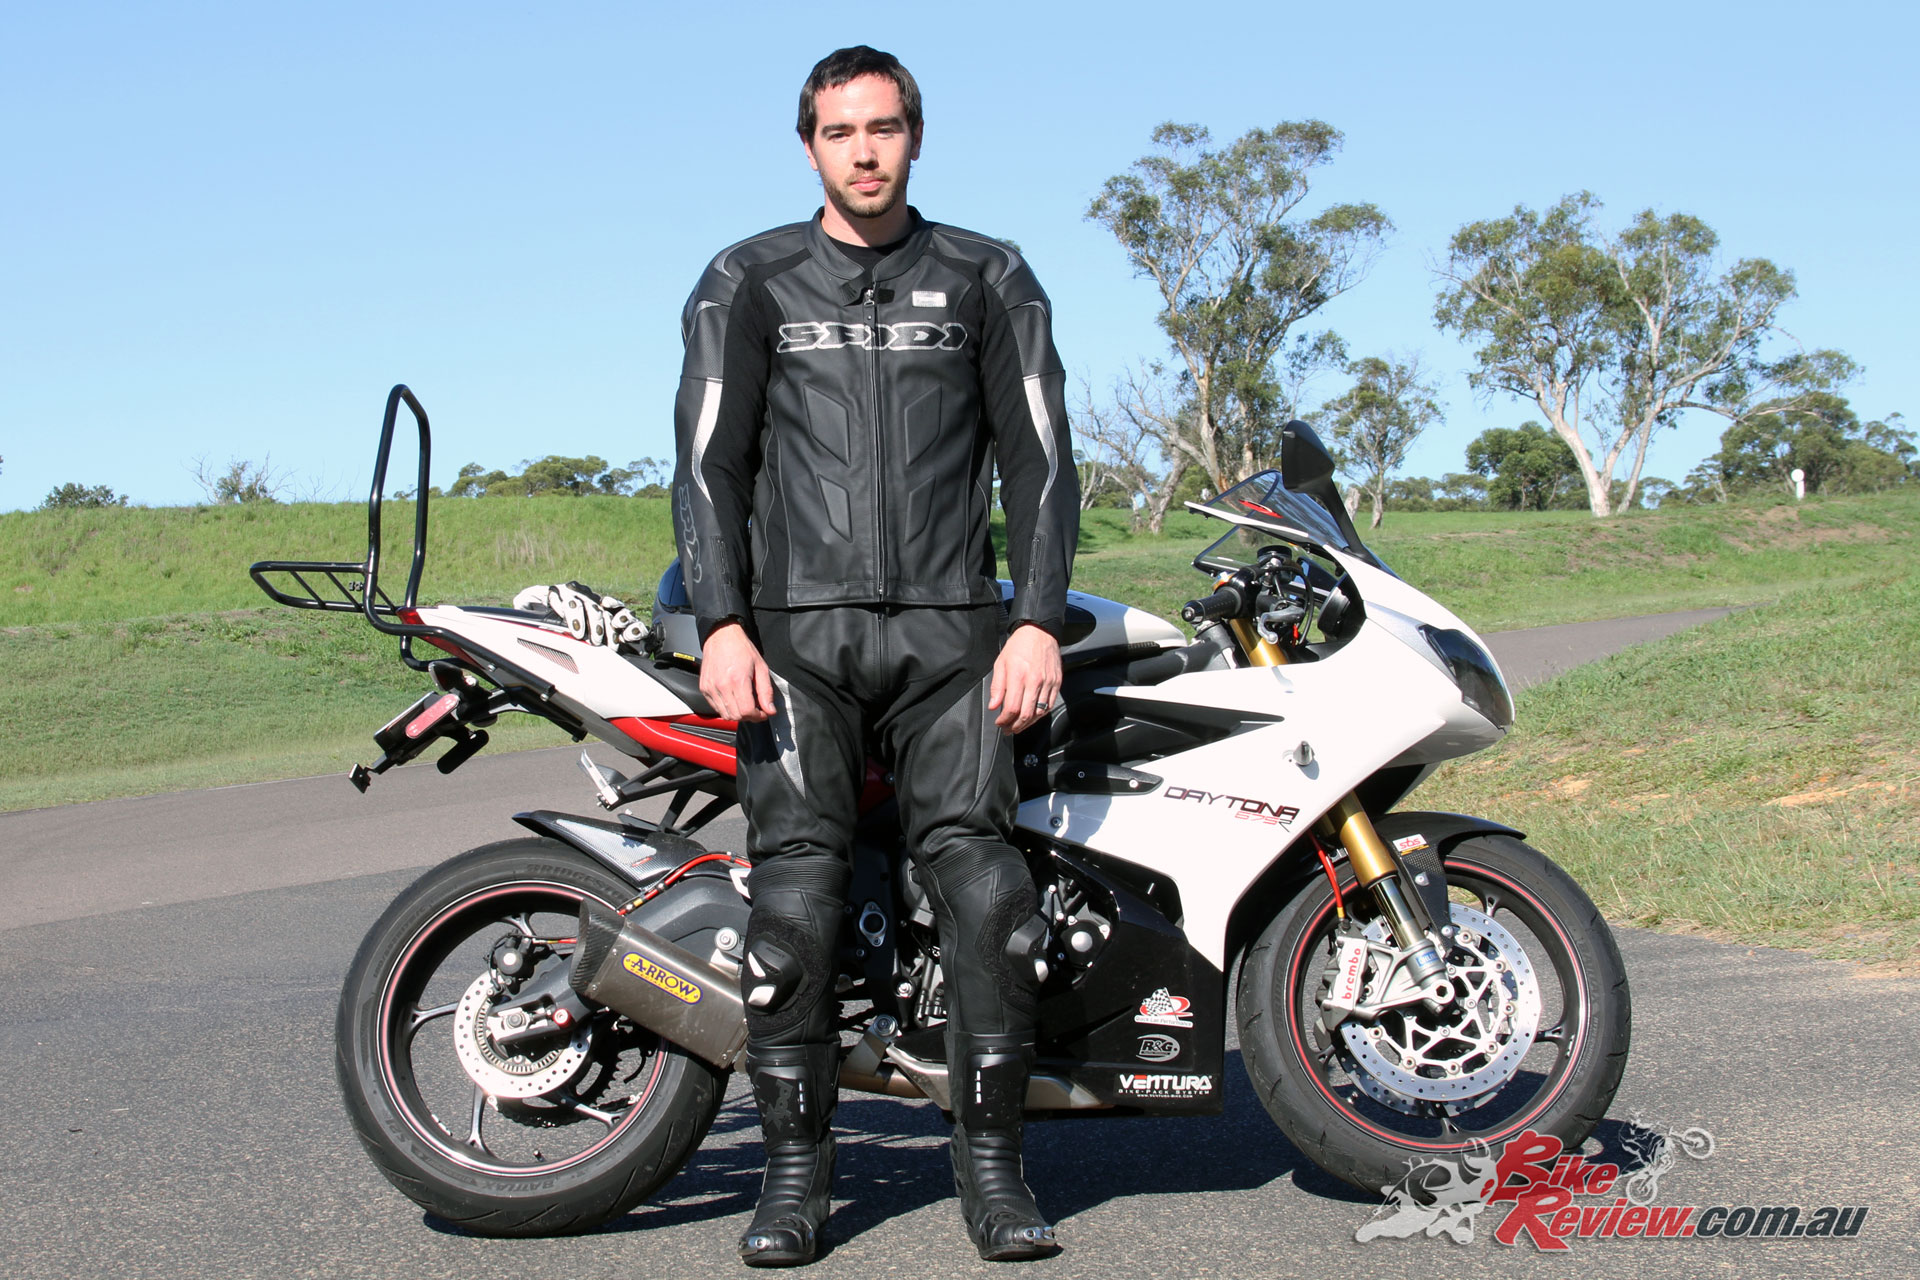 The Spidi Supersport Touring two-piece leathers are a great option if you want the flexibility of using each separately